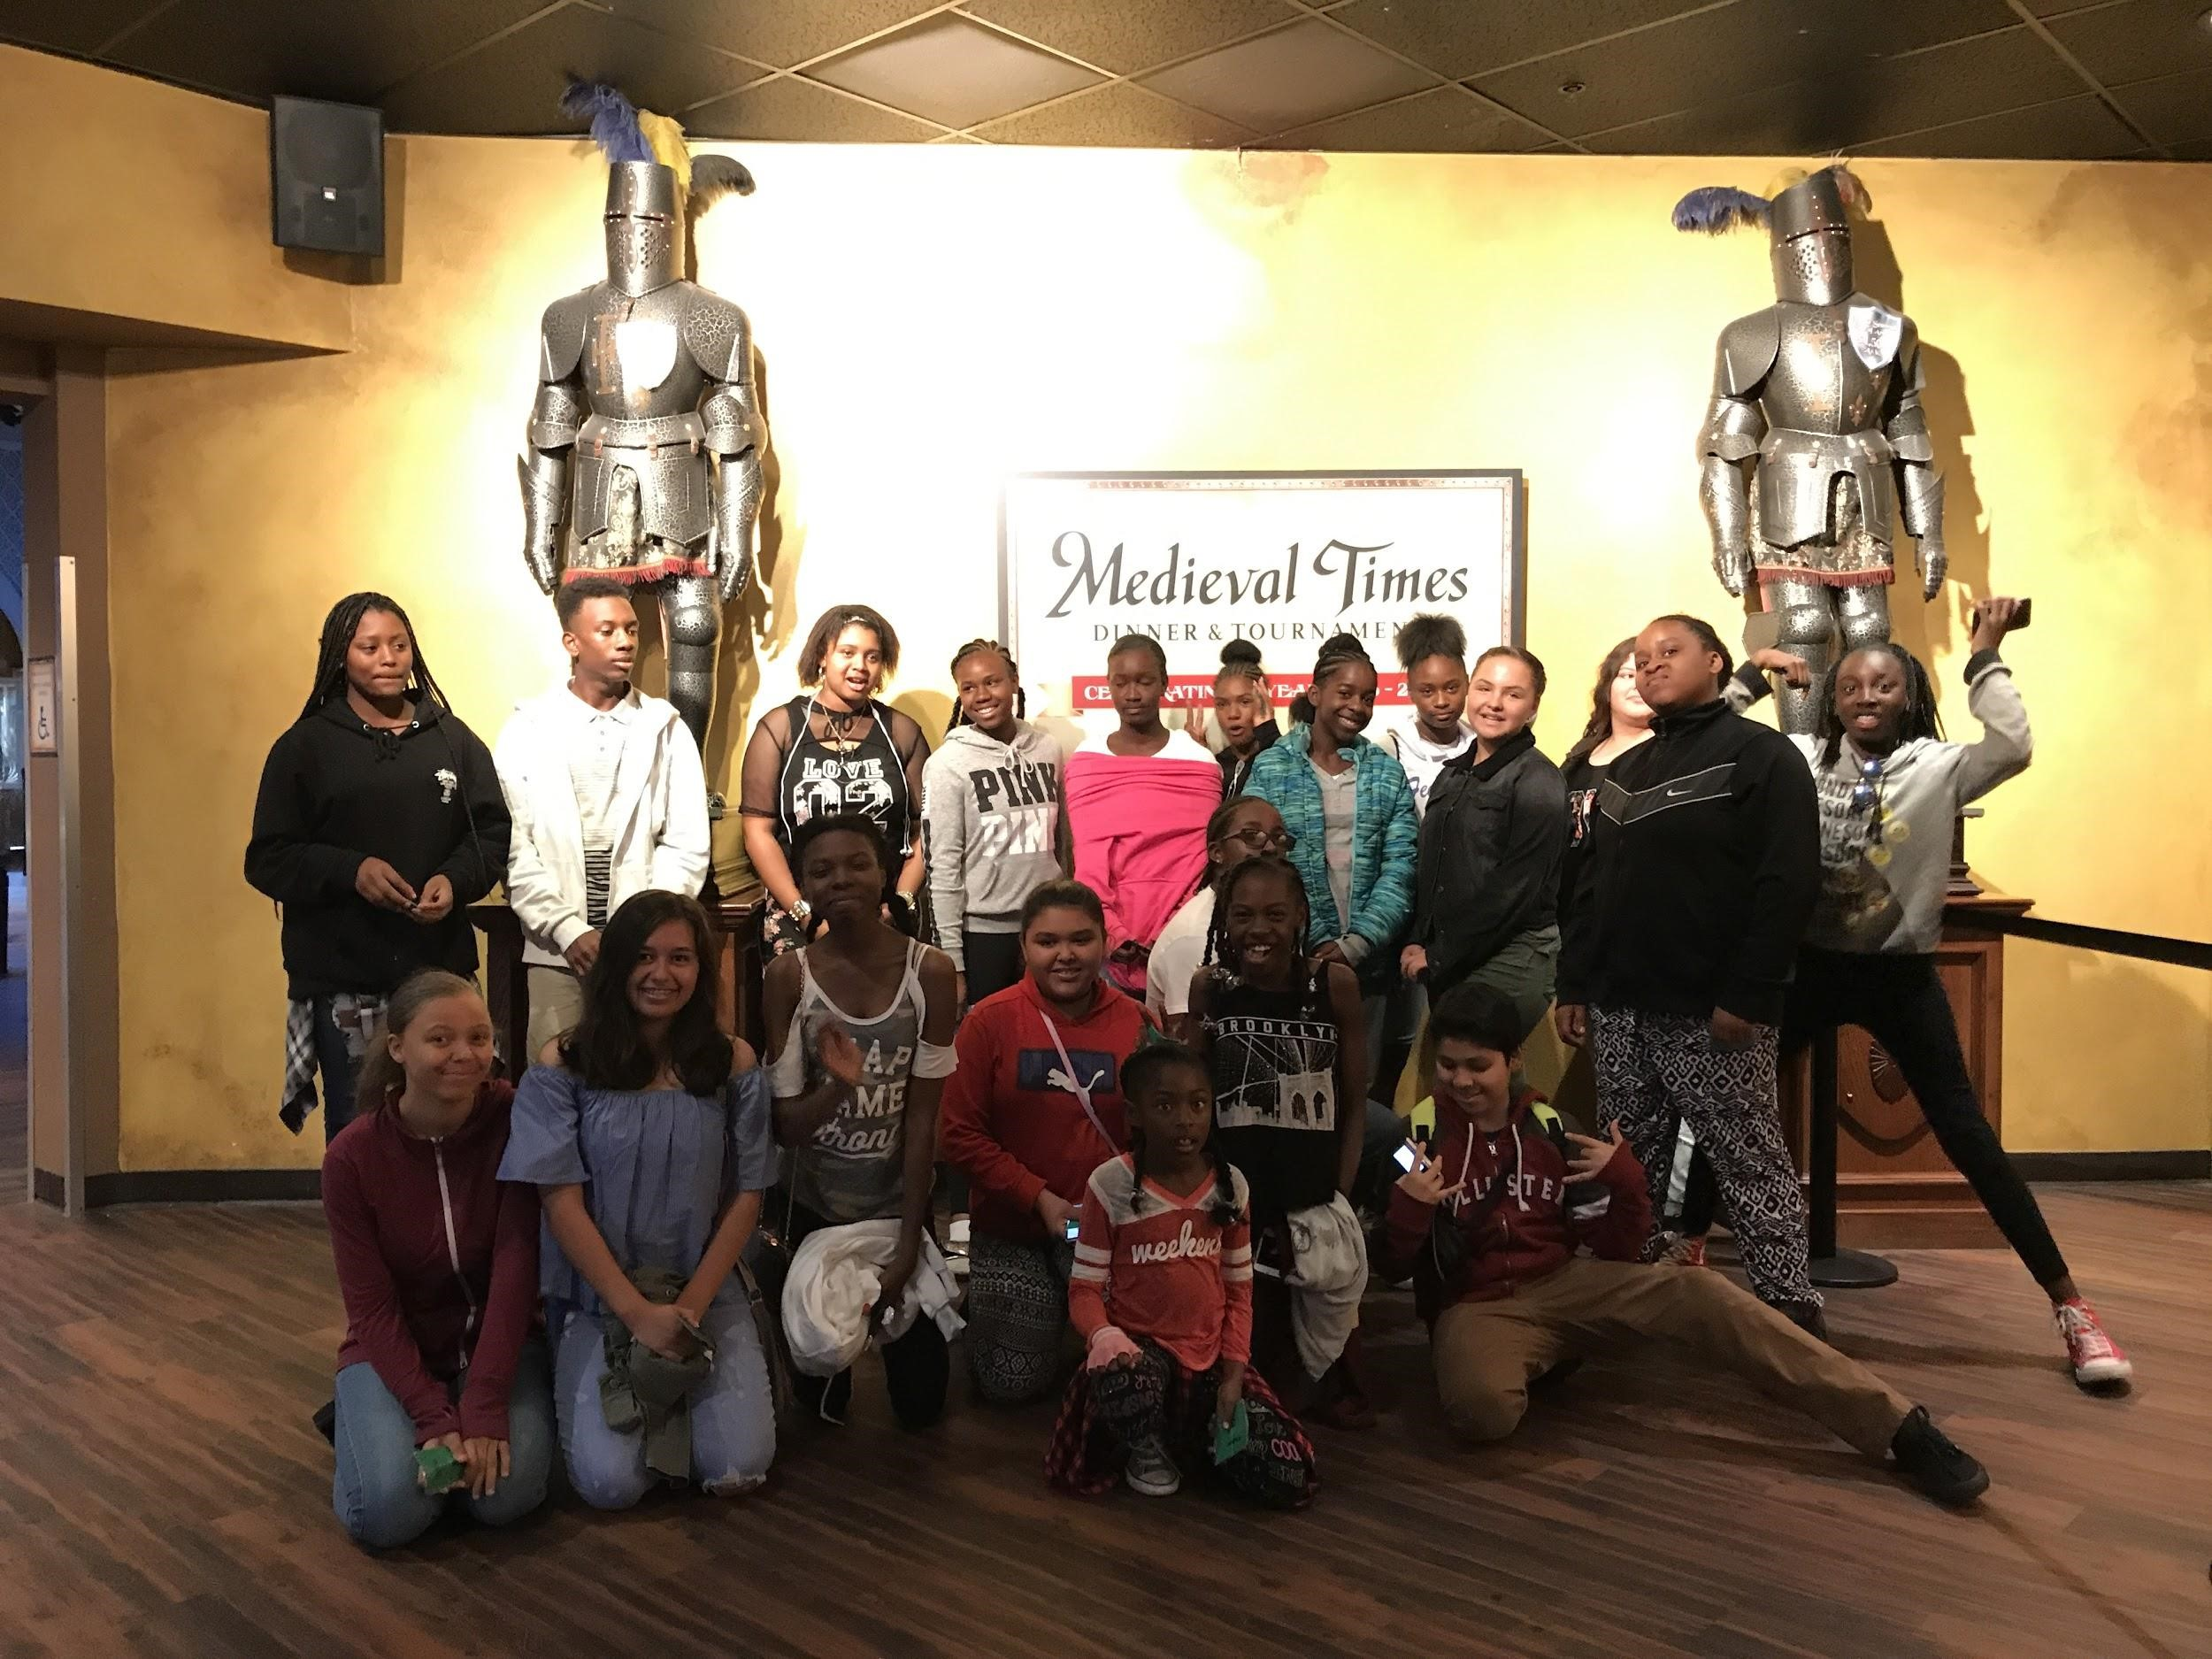 Medieval Times Los Angeles provides a concoction of entertainment and education